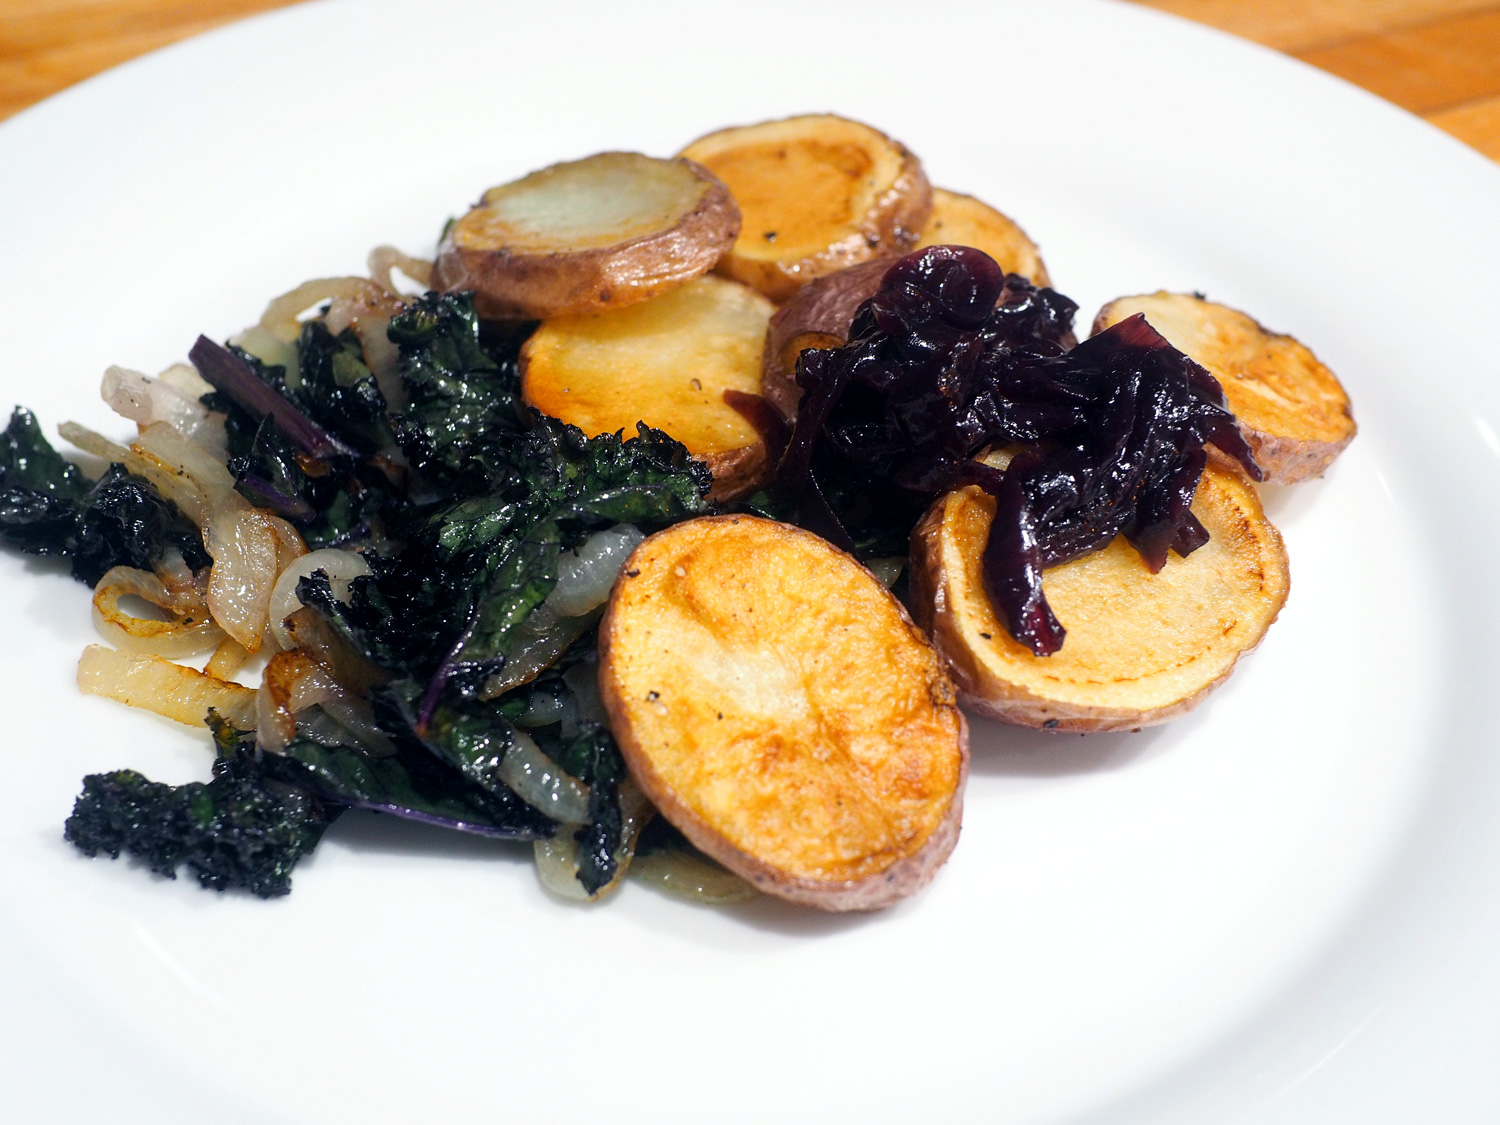 Sautéd purple kale, onions with pan seared potatoes topped with onion jam.